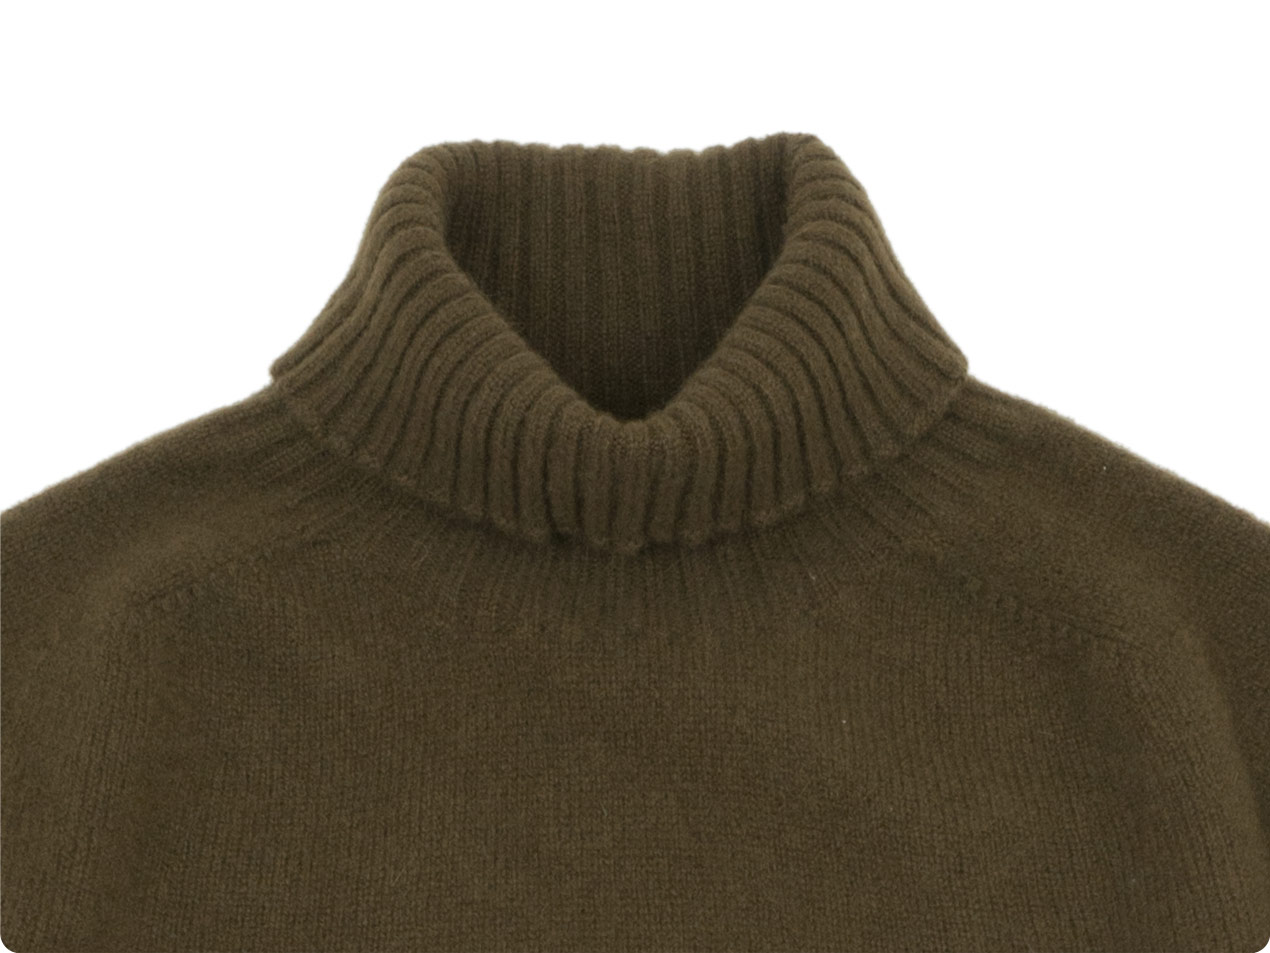 MARGARET HOWELL MERINO CASHMERE ROLL NECK KNIT